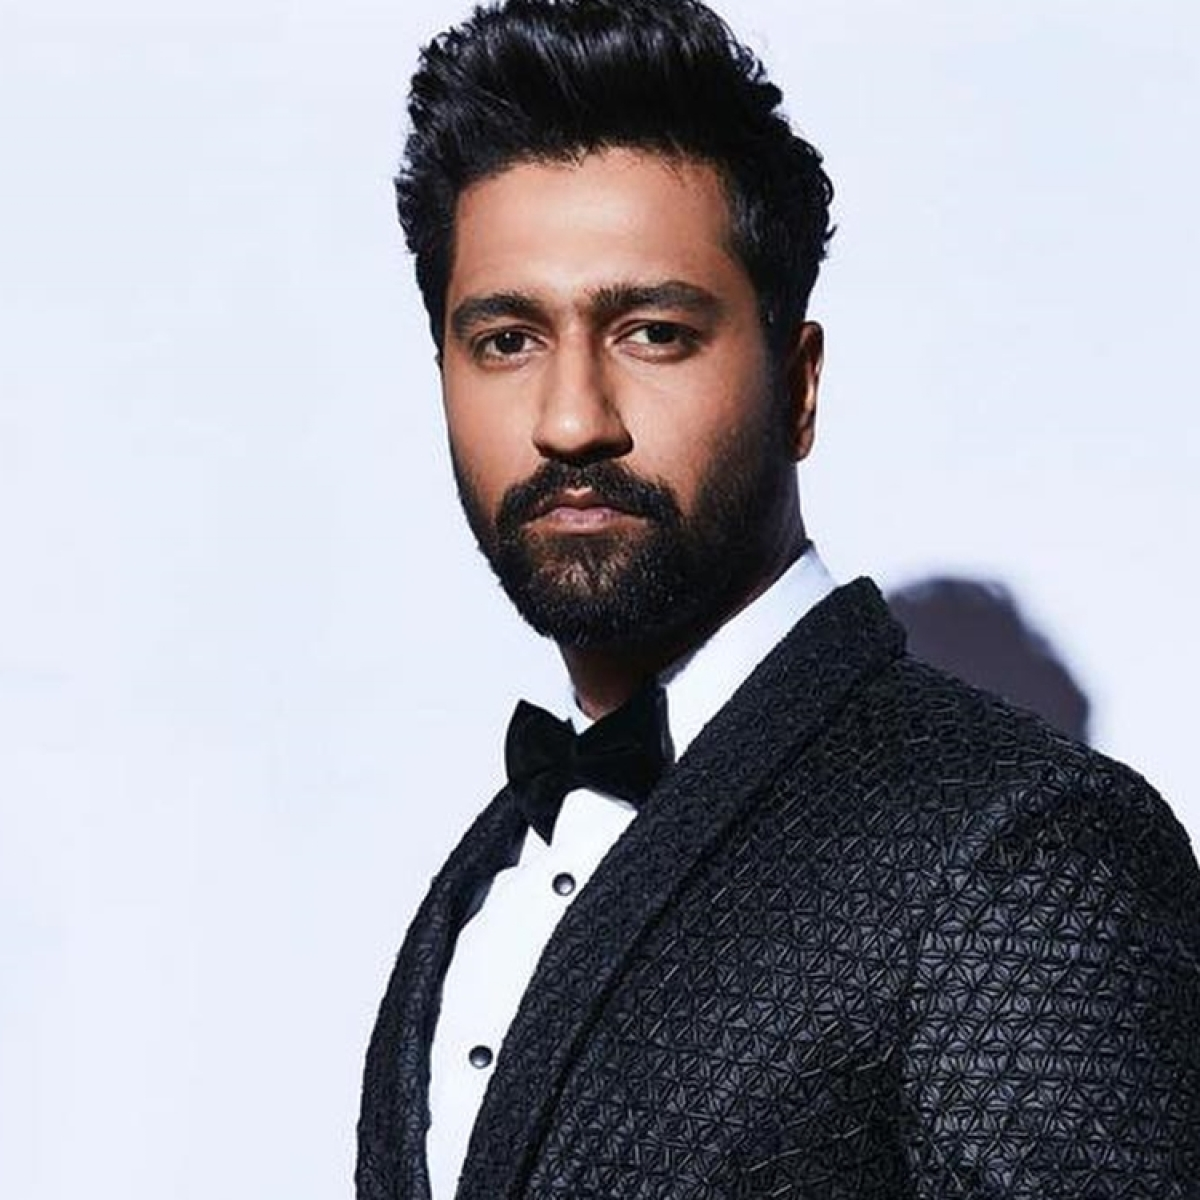 Vicky Kaushal reminisces 'Sanju' journey, as film completes one year